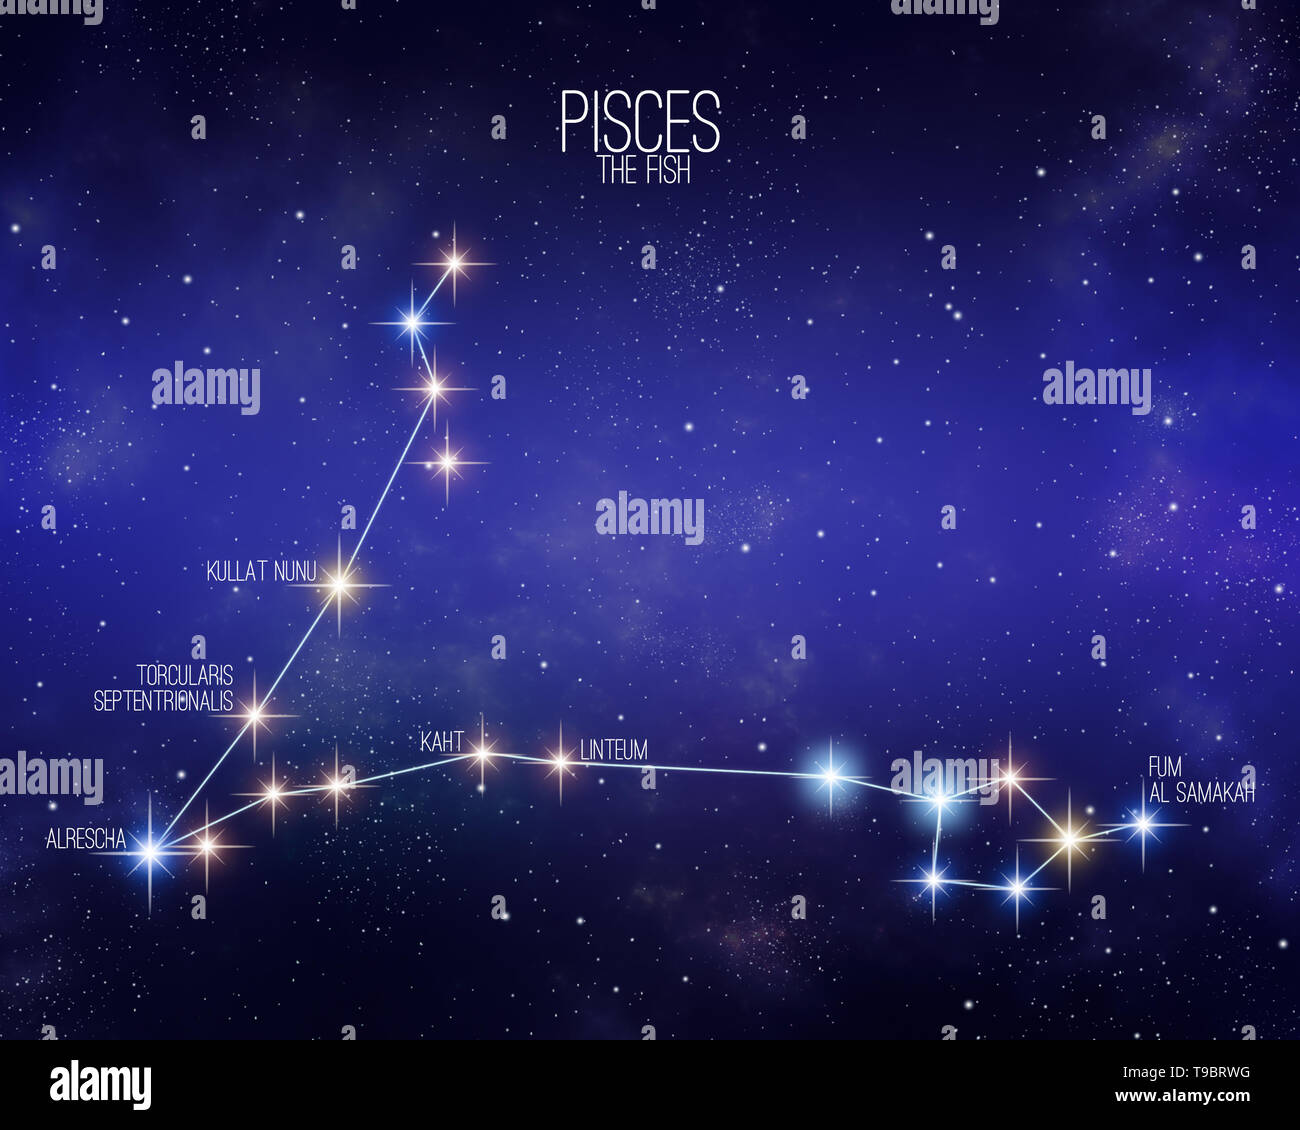 Pisces The Fish Zodiac Constellation Map On A Starry Space